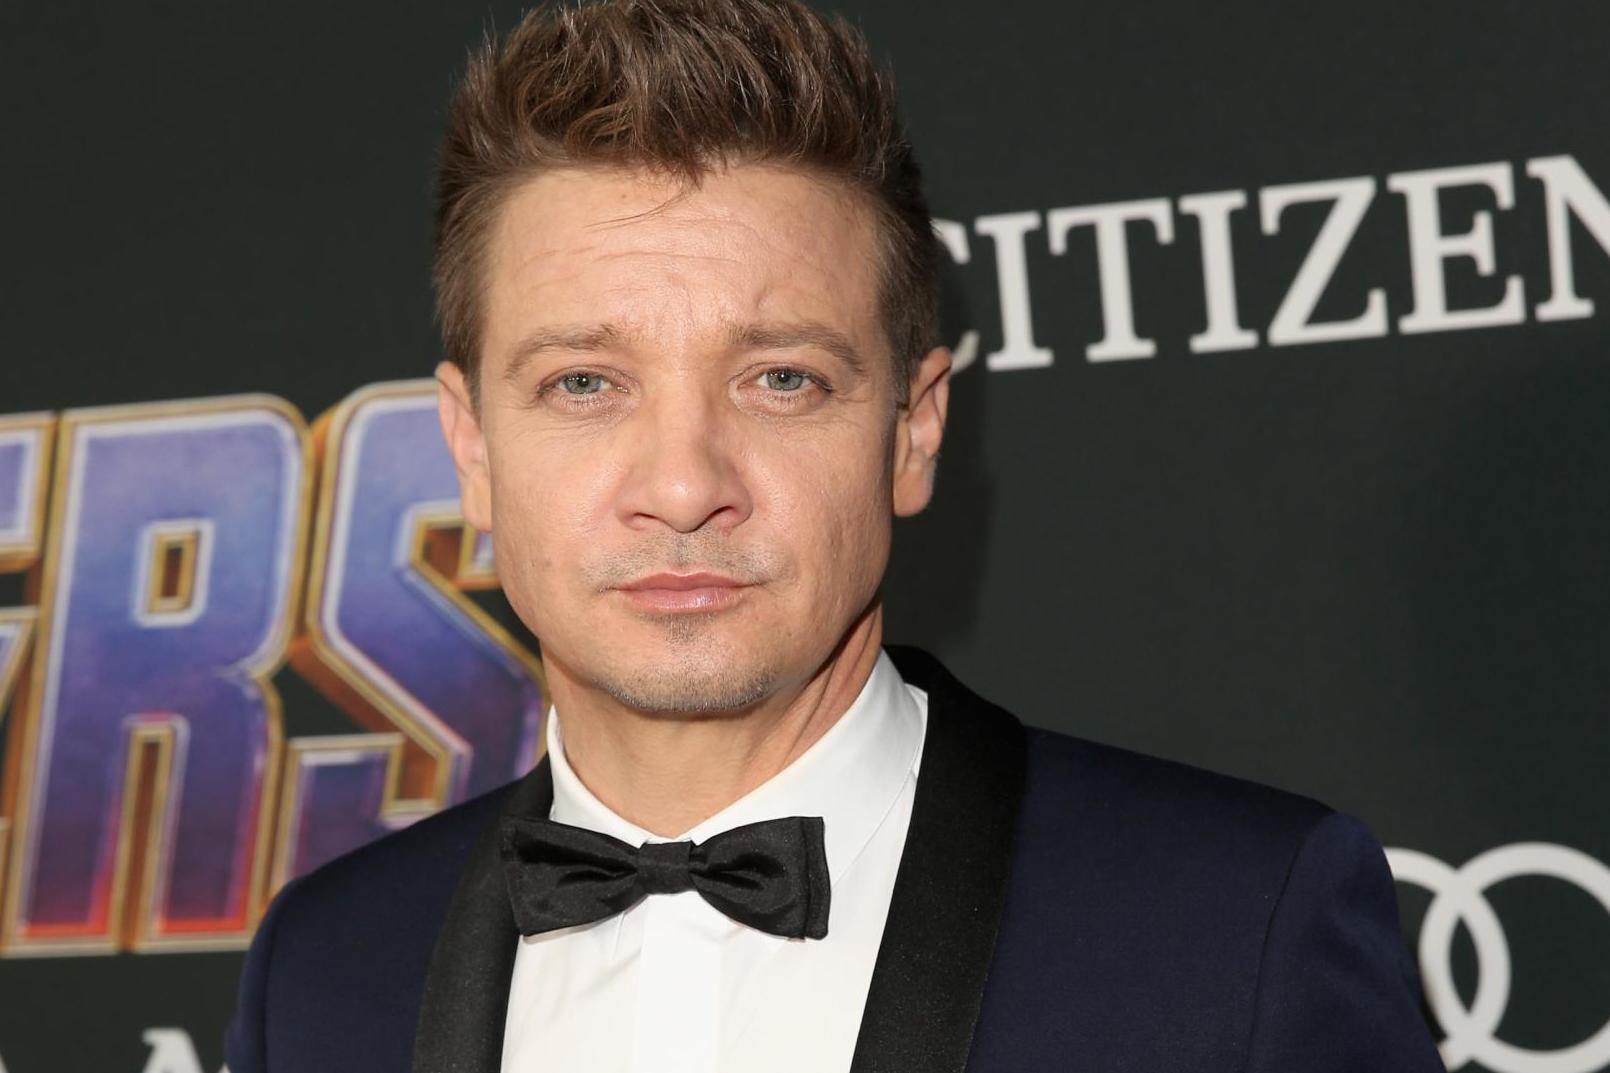 Jeremy Renner acccused of 'threatening to kill ex-wife' as custody battle rages on